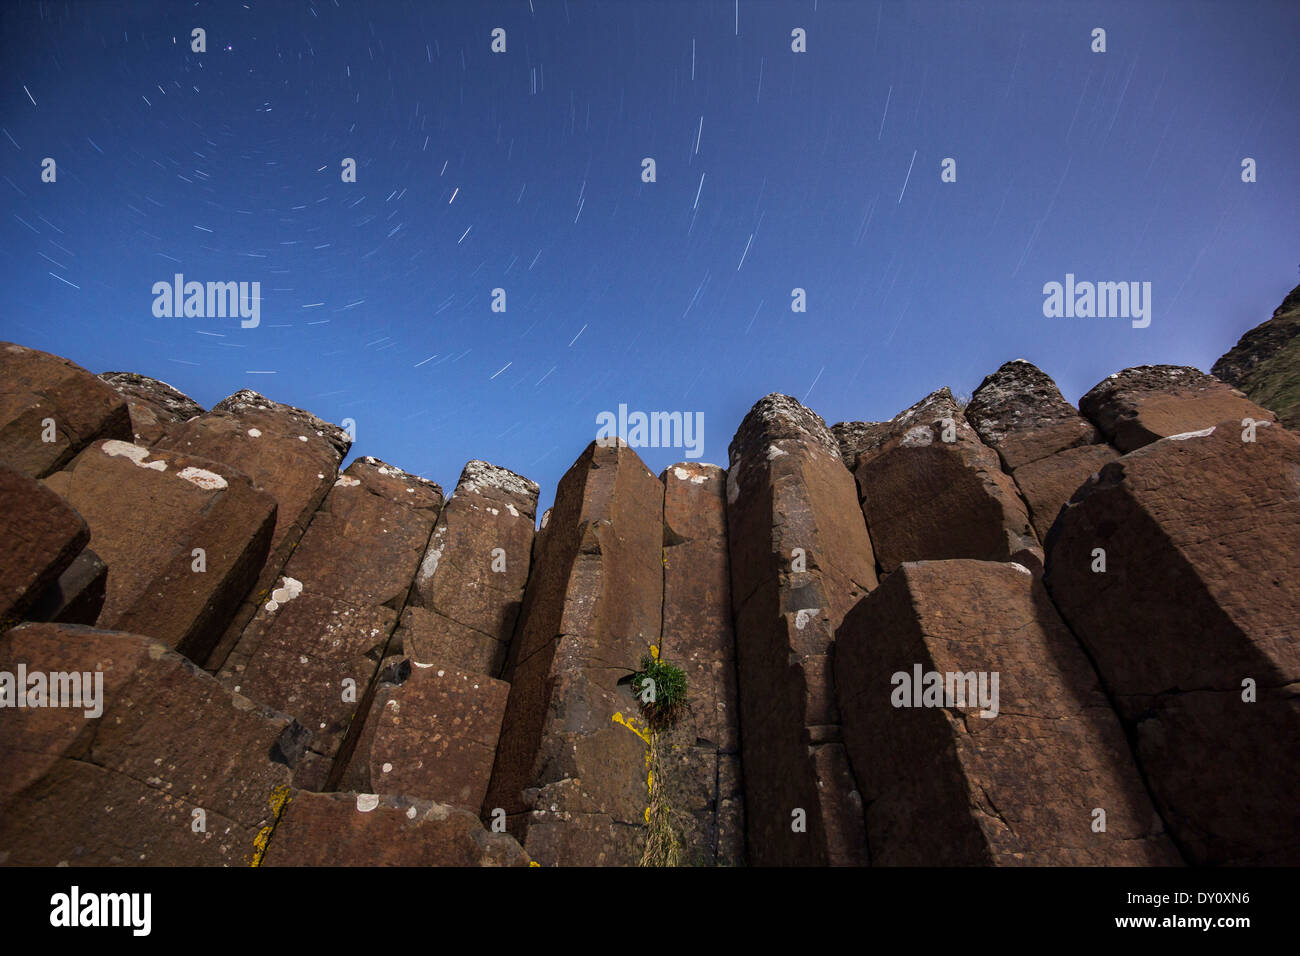 Starry night above the basalt columns at the Giant's Causeway UNESCO World Heritage site. - Stock Image